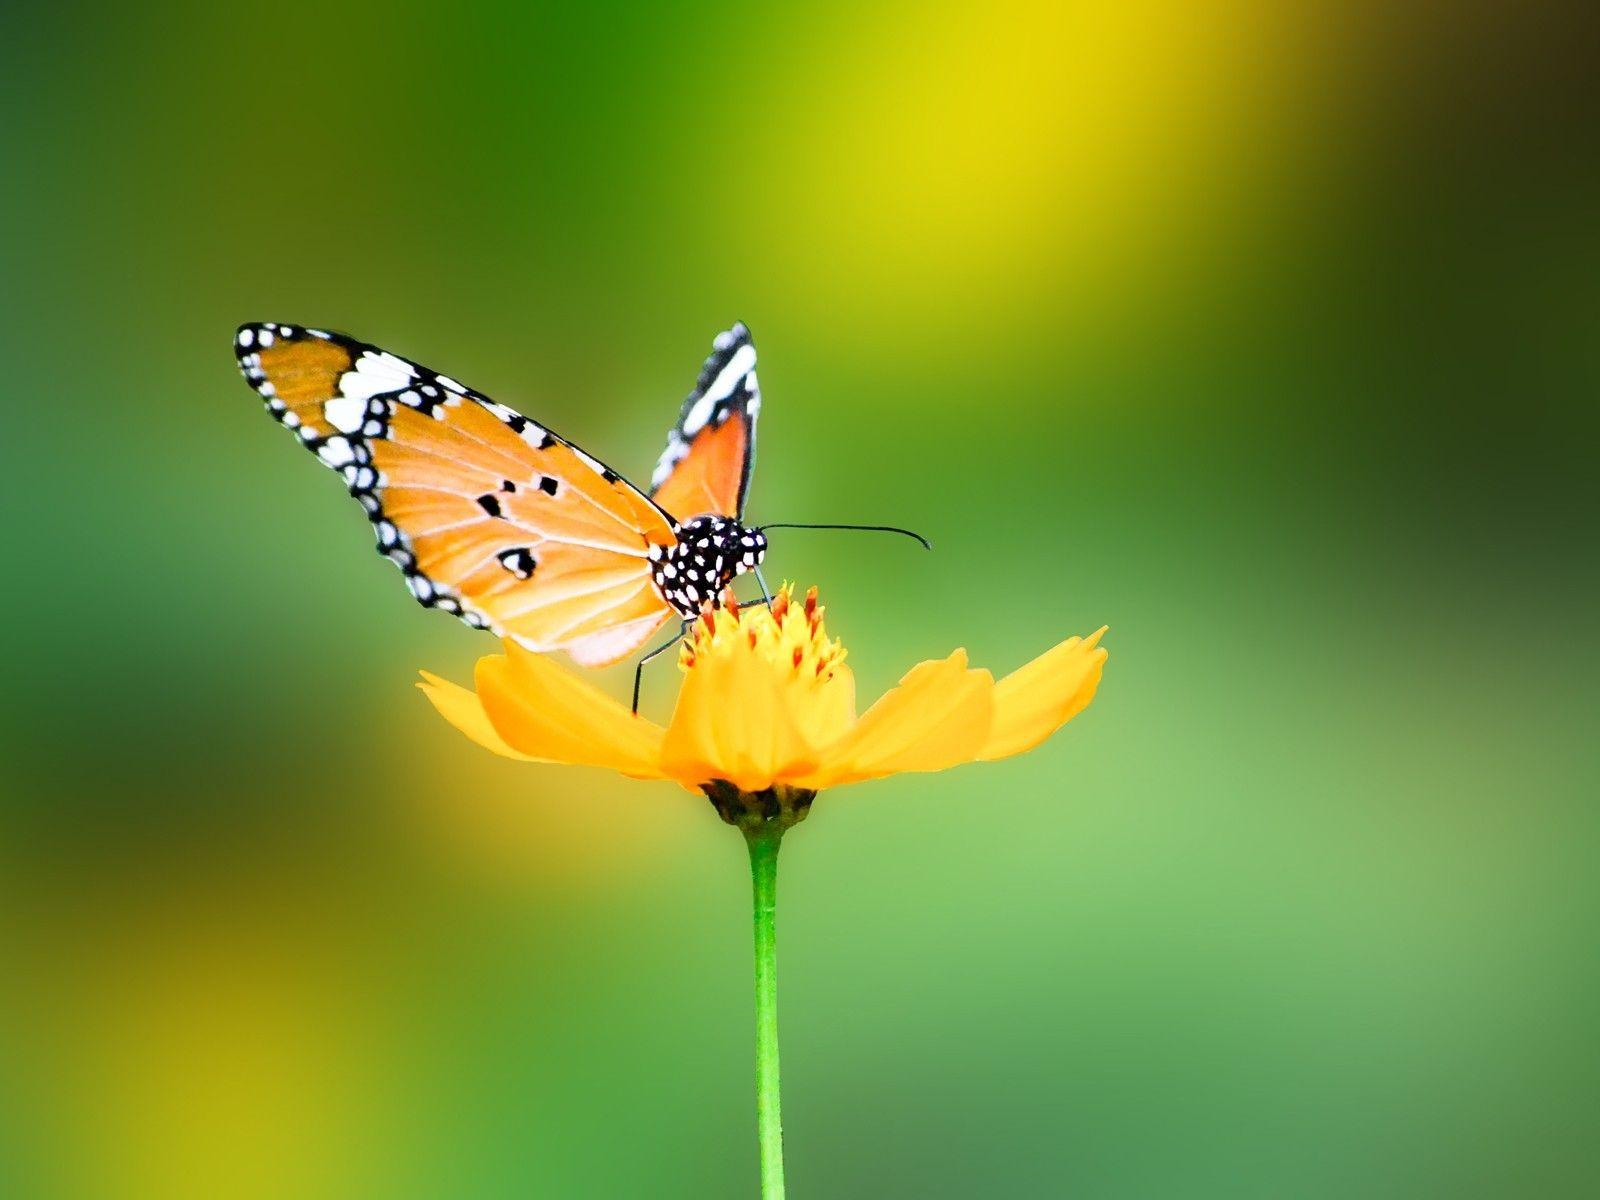 Butterfly Nature Wallpapers Hd Wallpaper Cave